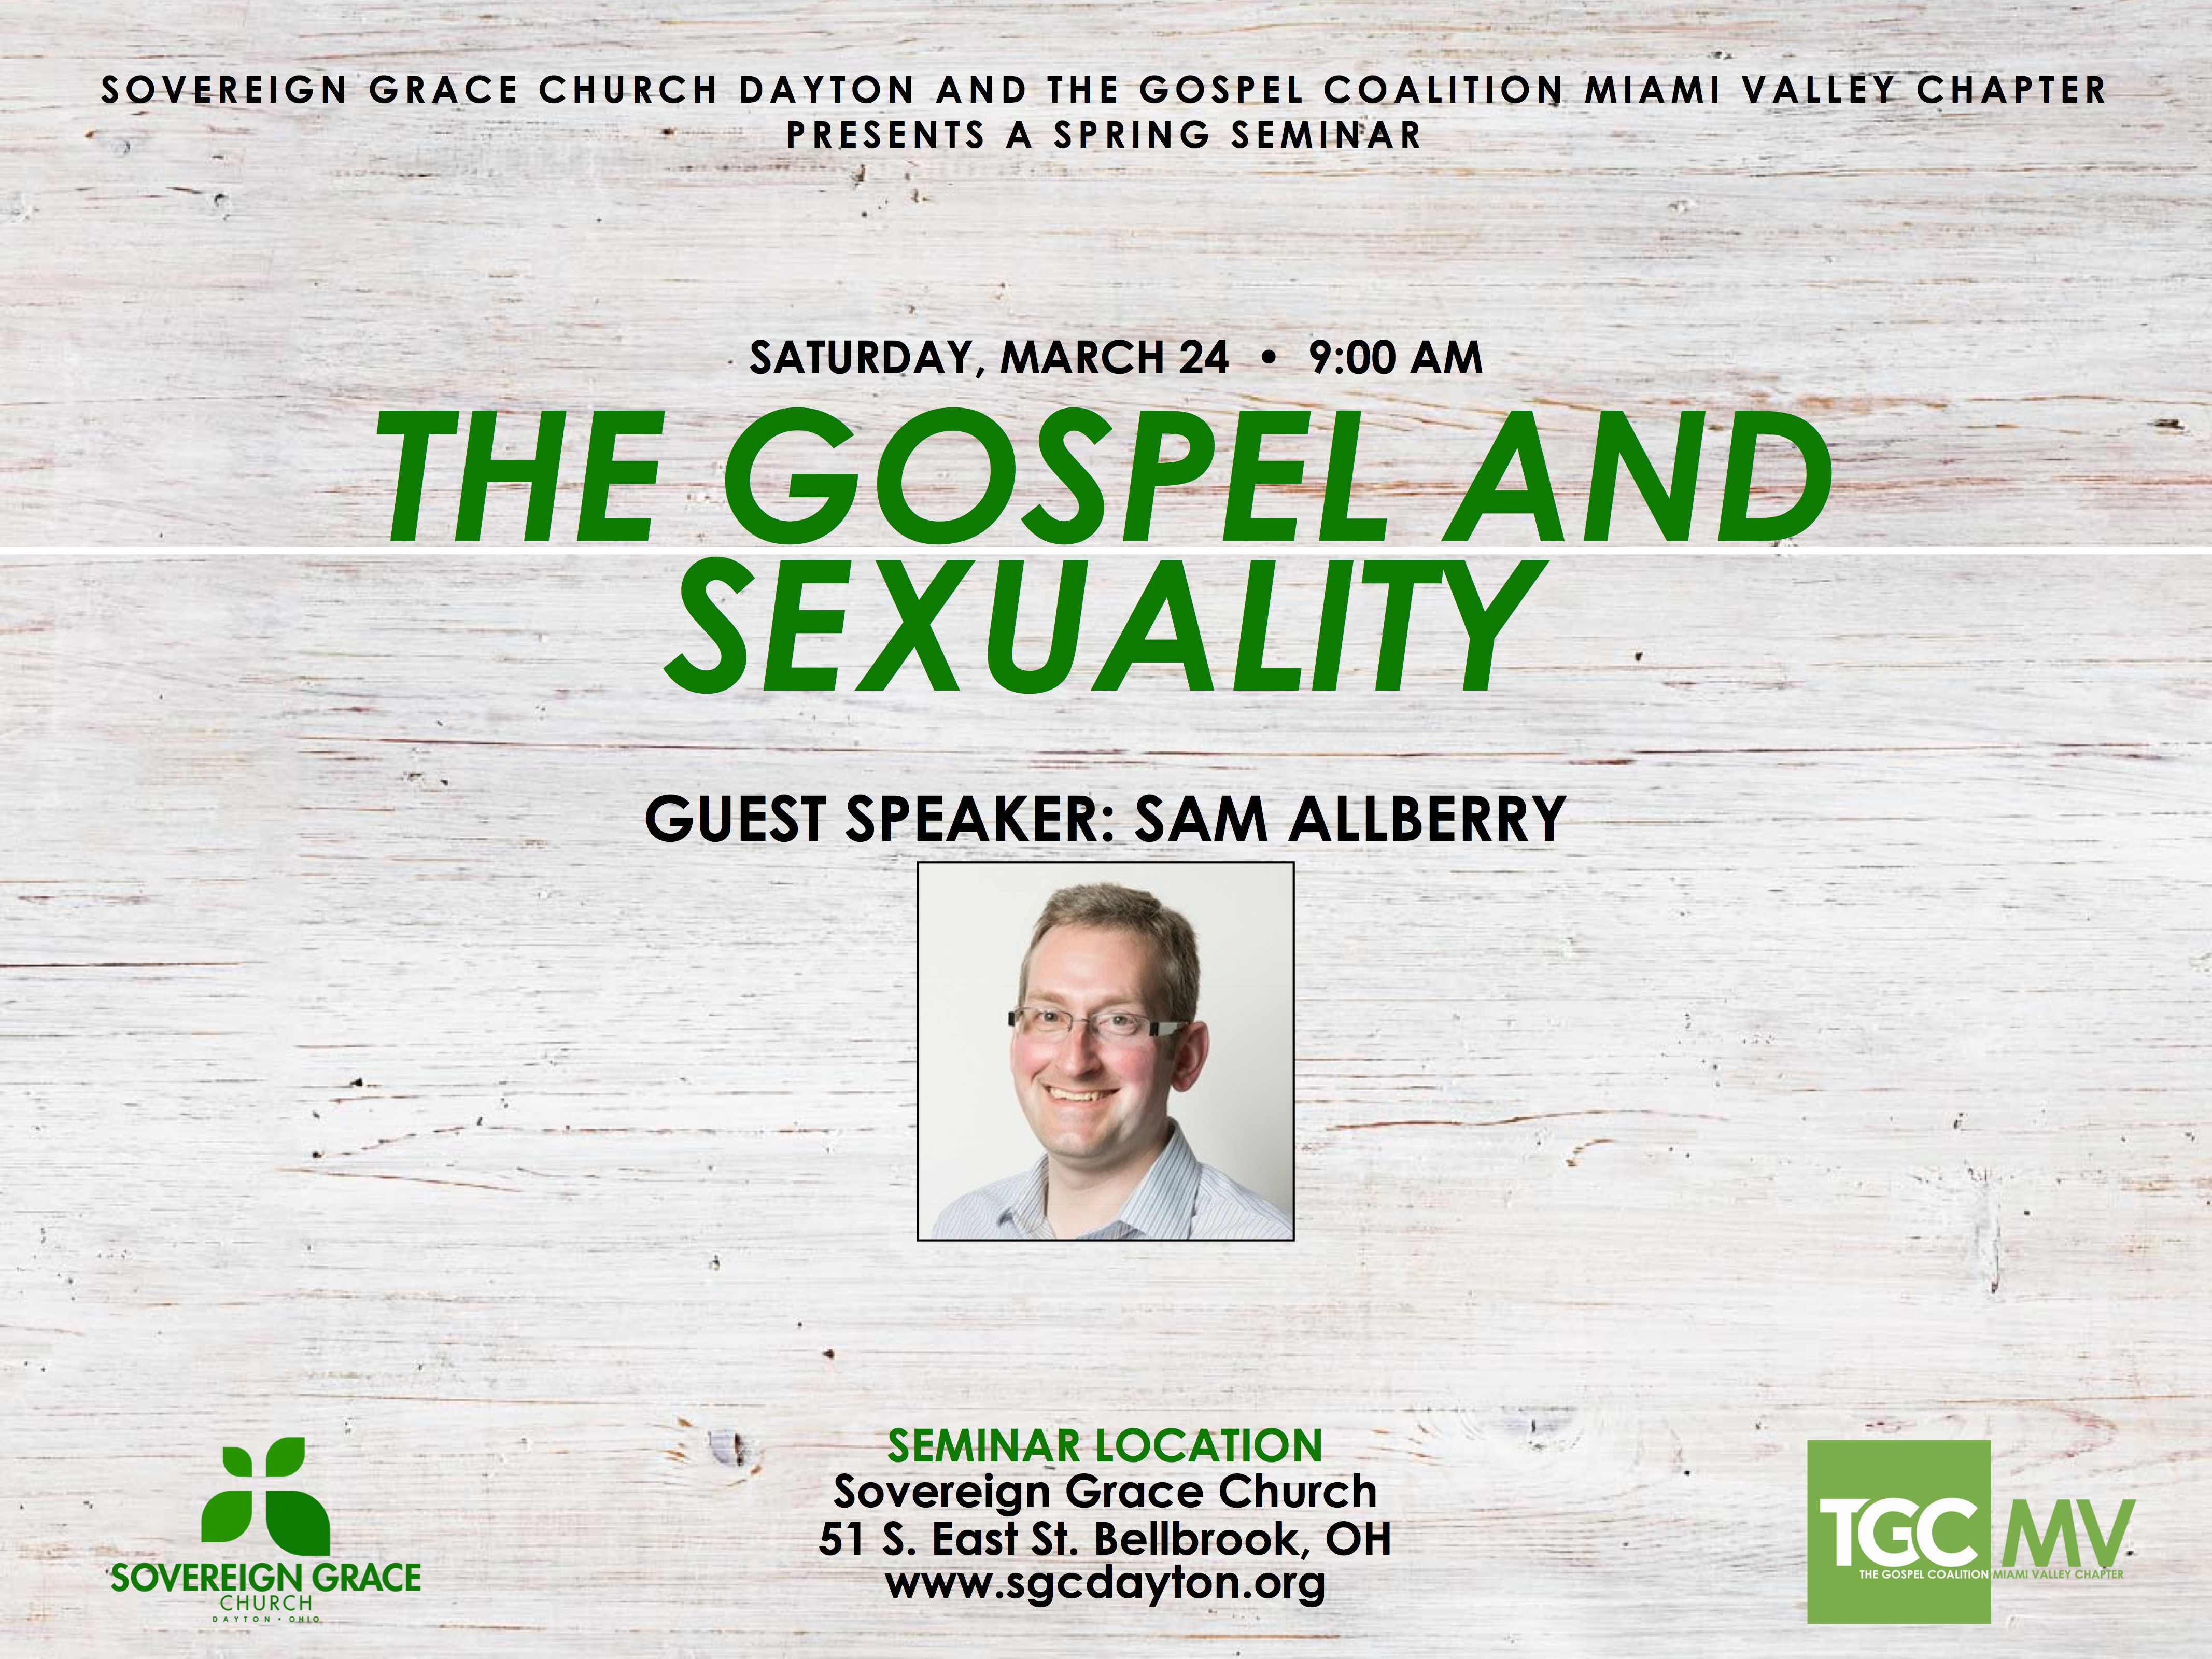 The gospel and sexuality 1024x768